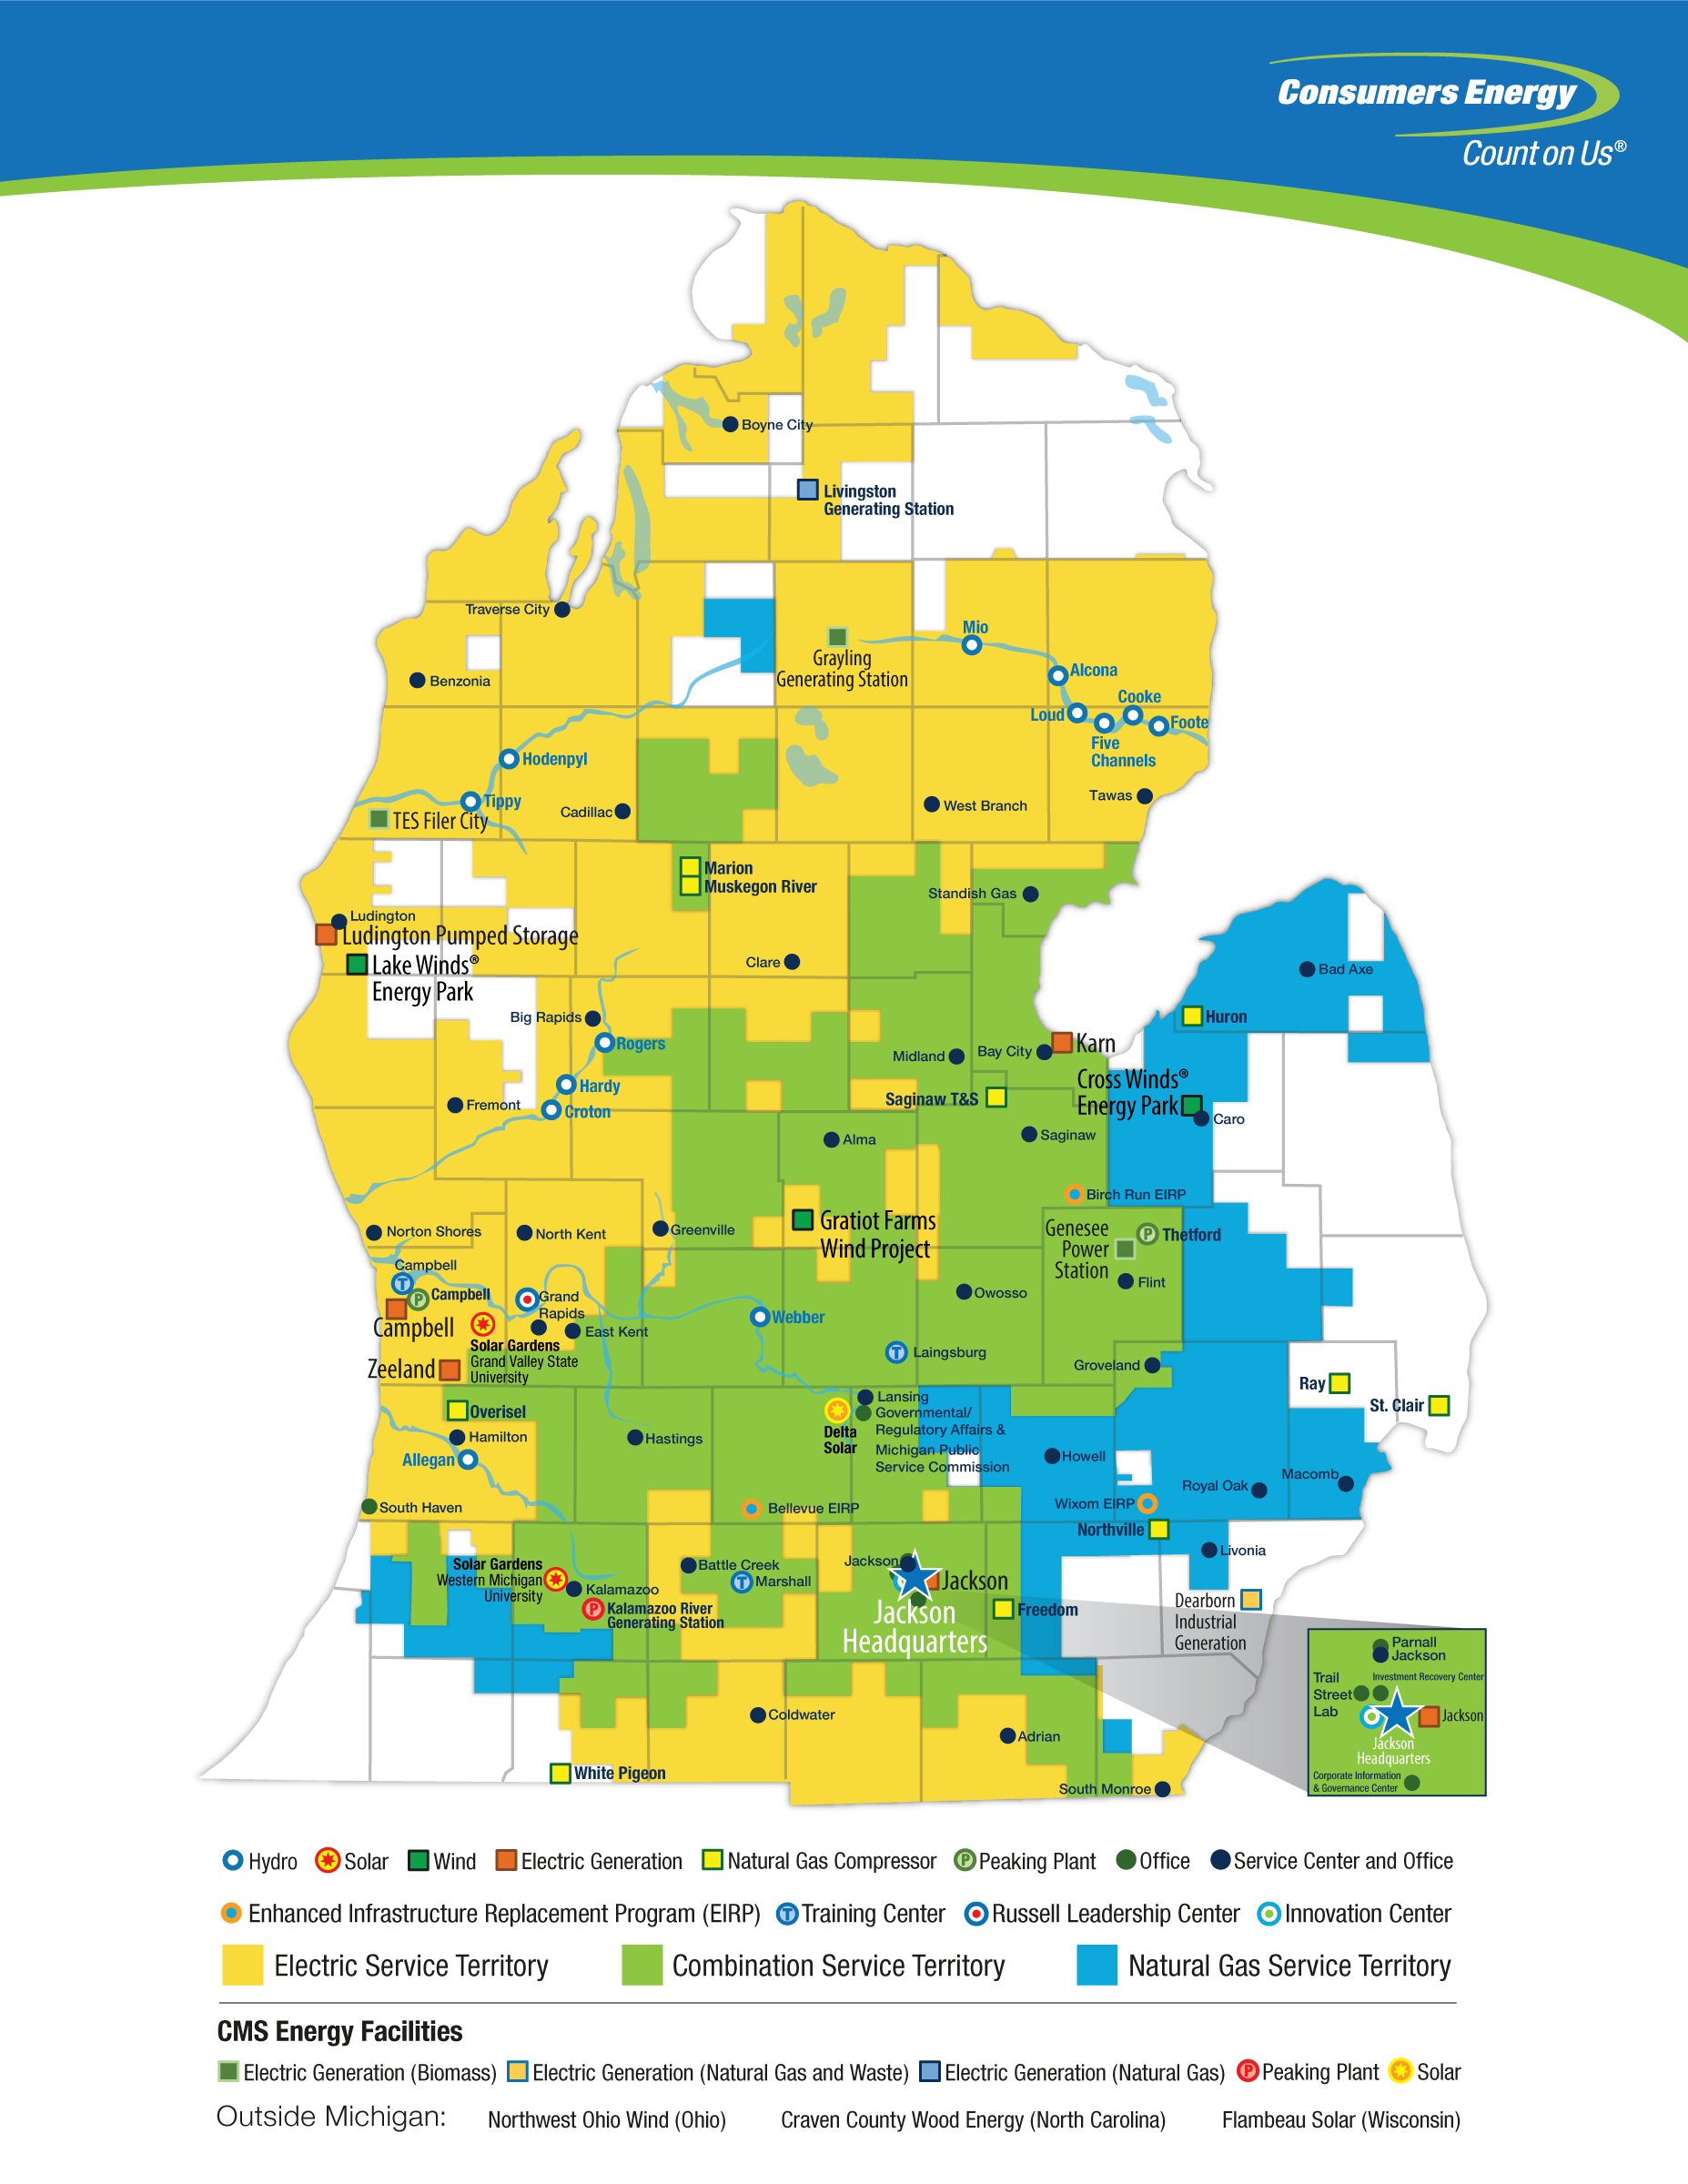 Consumers Power Outage Map Michigan Electric and Natural Gas Service Territories | Consumers Energy